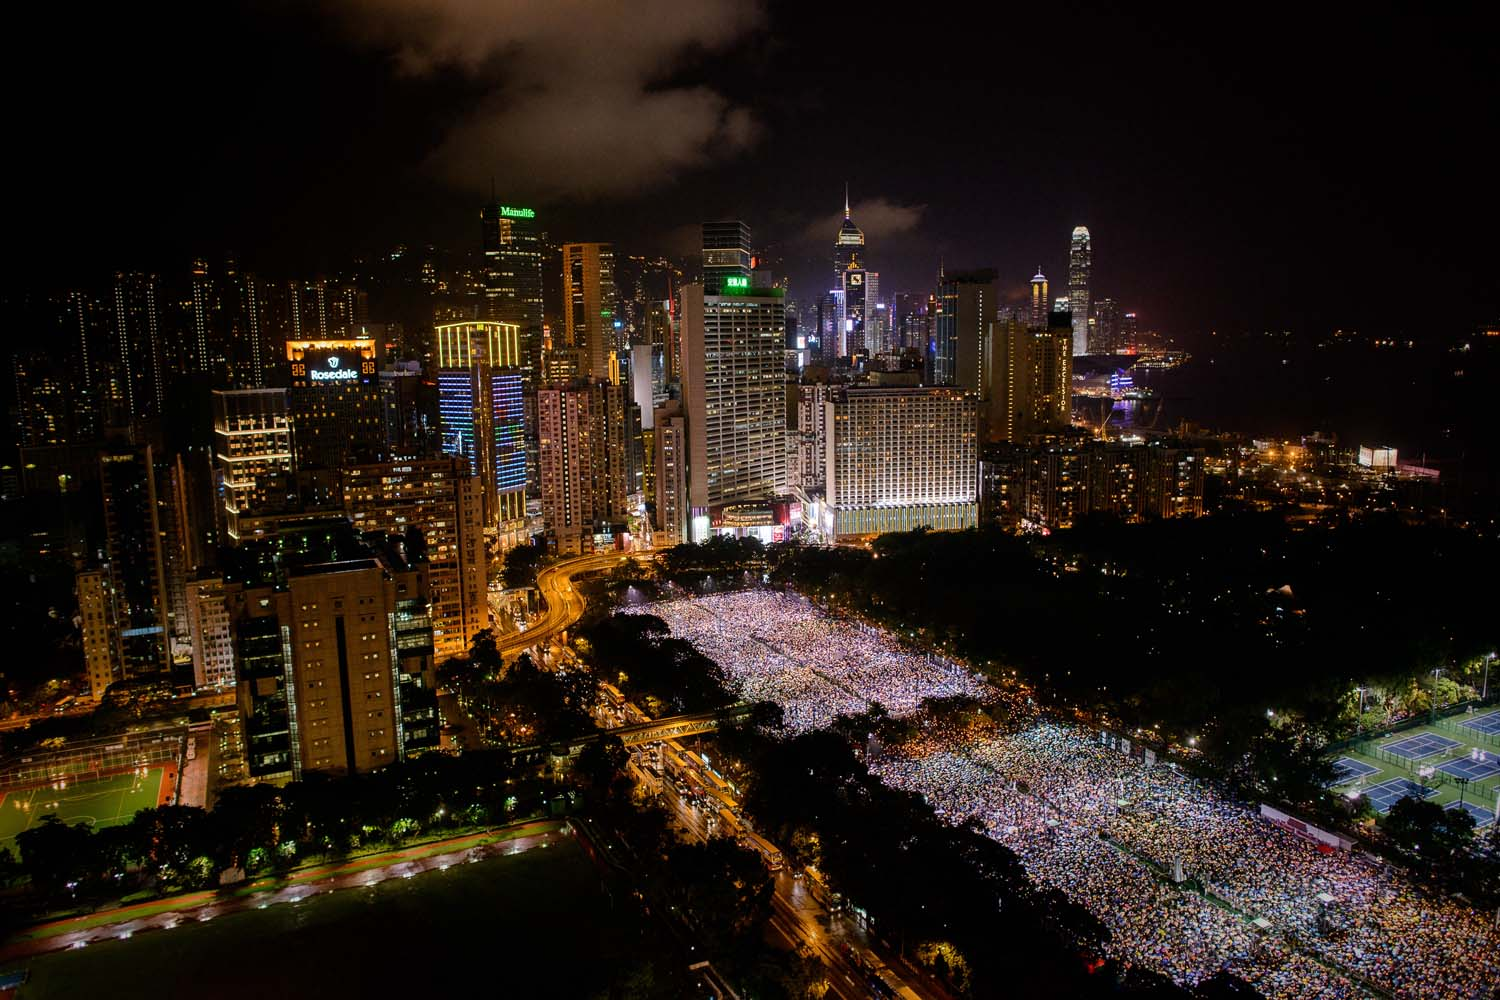 June 4, 2013. People are seen gathered at Victoria Park during a candlelight vigil held to mark the 24th anniversary of the 1989 crackdown at Tienanmen Square, in Hong Kong.